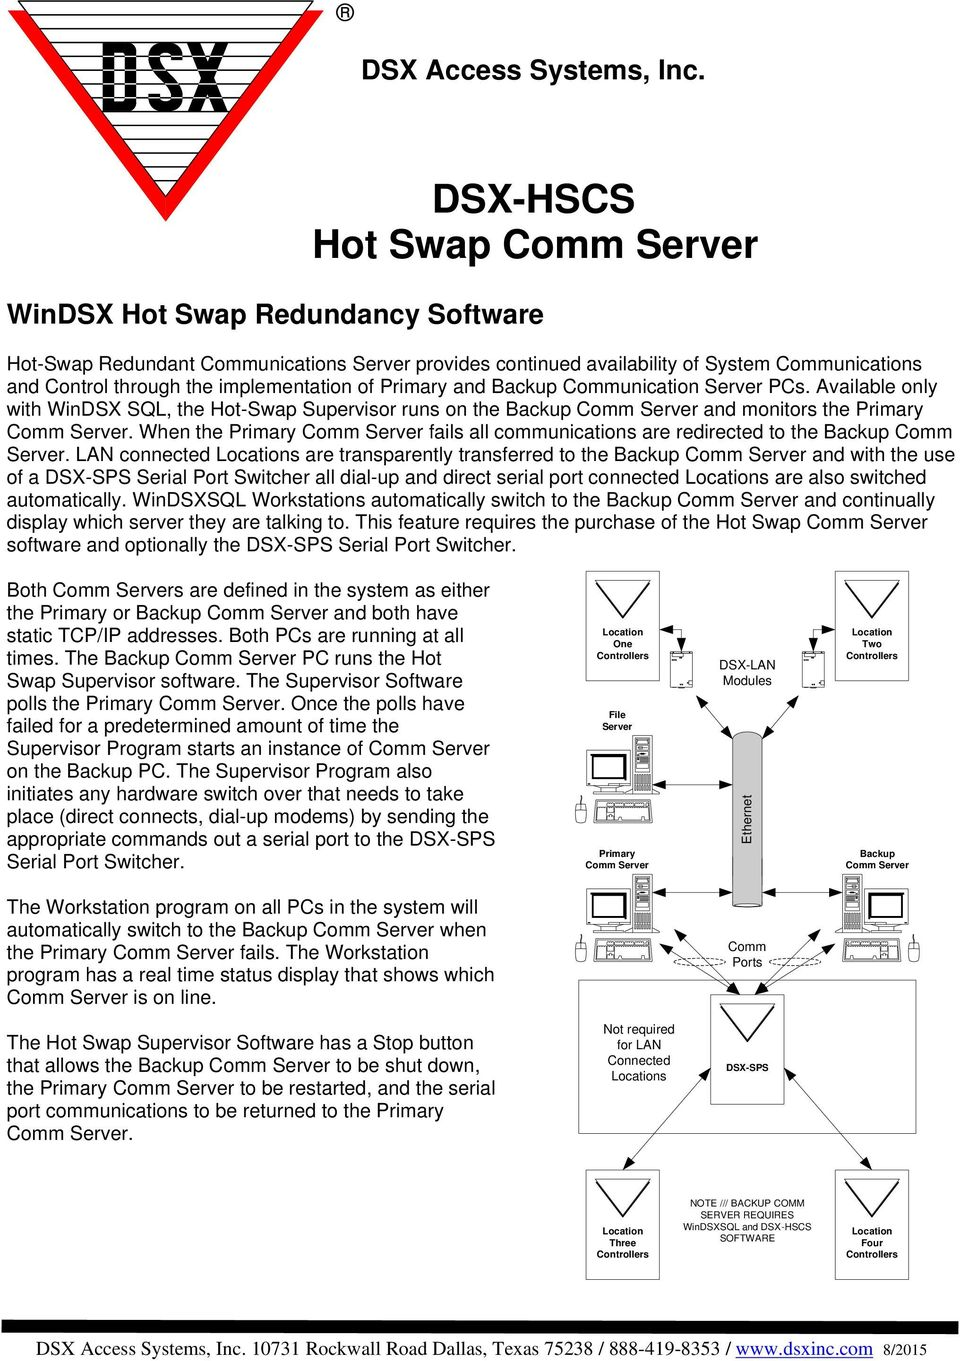 implementation of Primary and Backup Communication Server PCs. Available only with WinDSX SQL, the Hot-Swap Supervisor runs on the Backup Comm Server and monitors the Primary Comm Server.